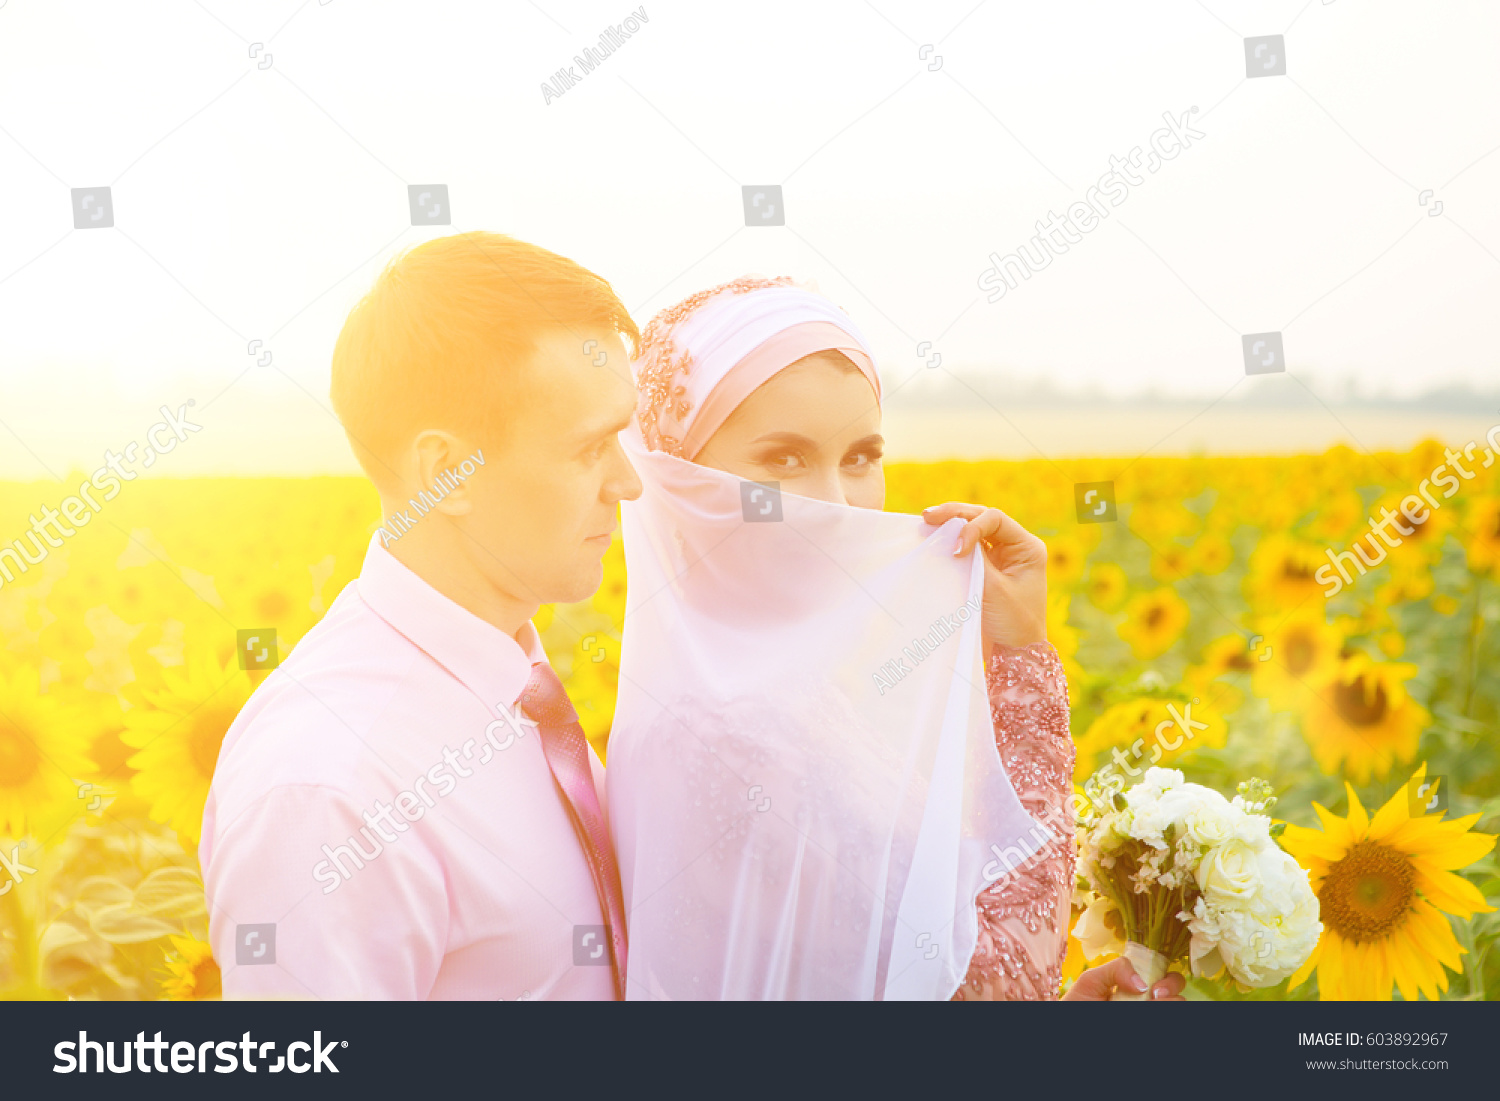 beaver meadows muslim dating site Hipster shaadi is a dating site where hip muslims can connect with people who also care about their faith but who are maybe more new world than old.